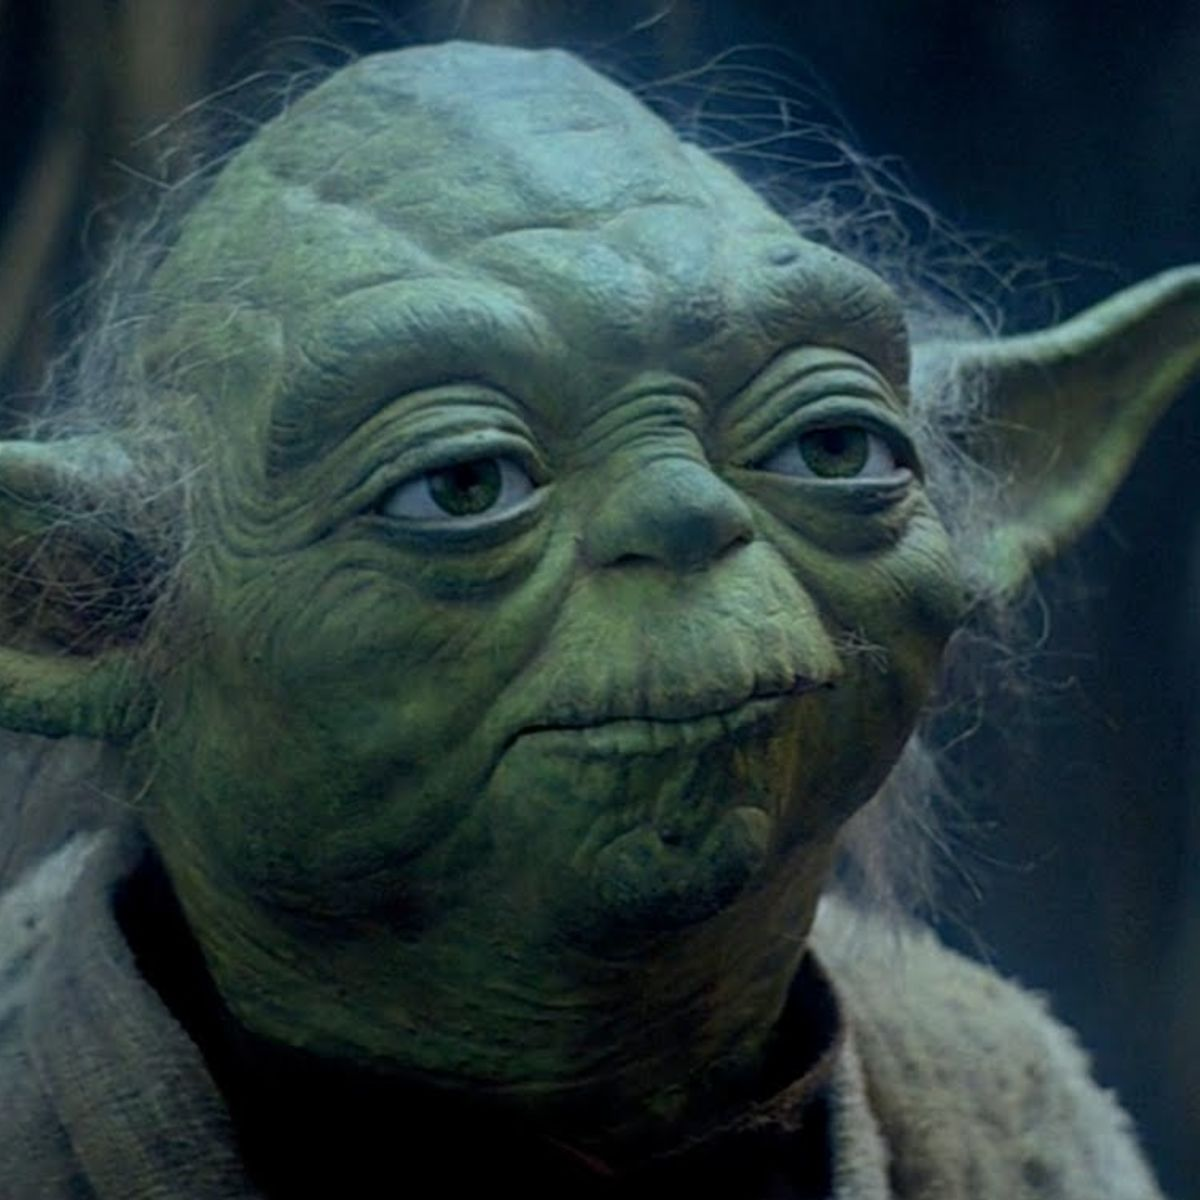 yoda-the-empire-strikes-back.jpg